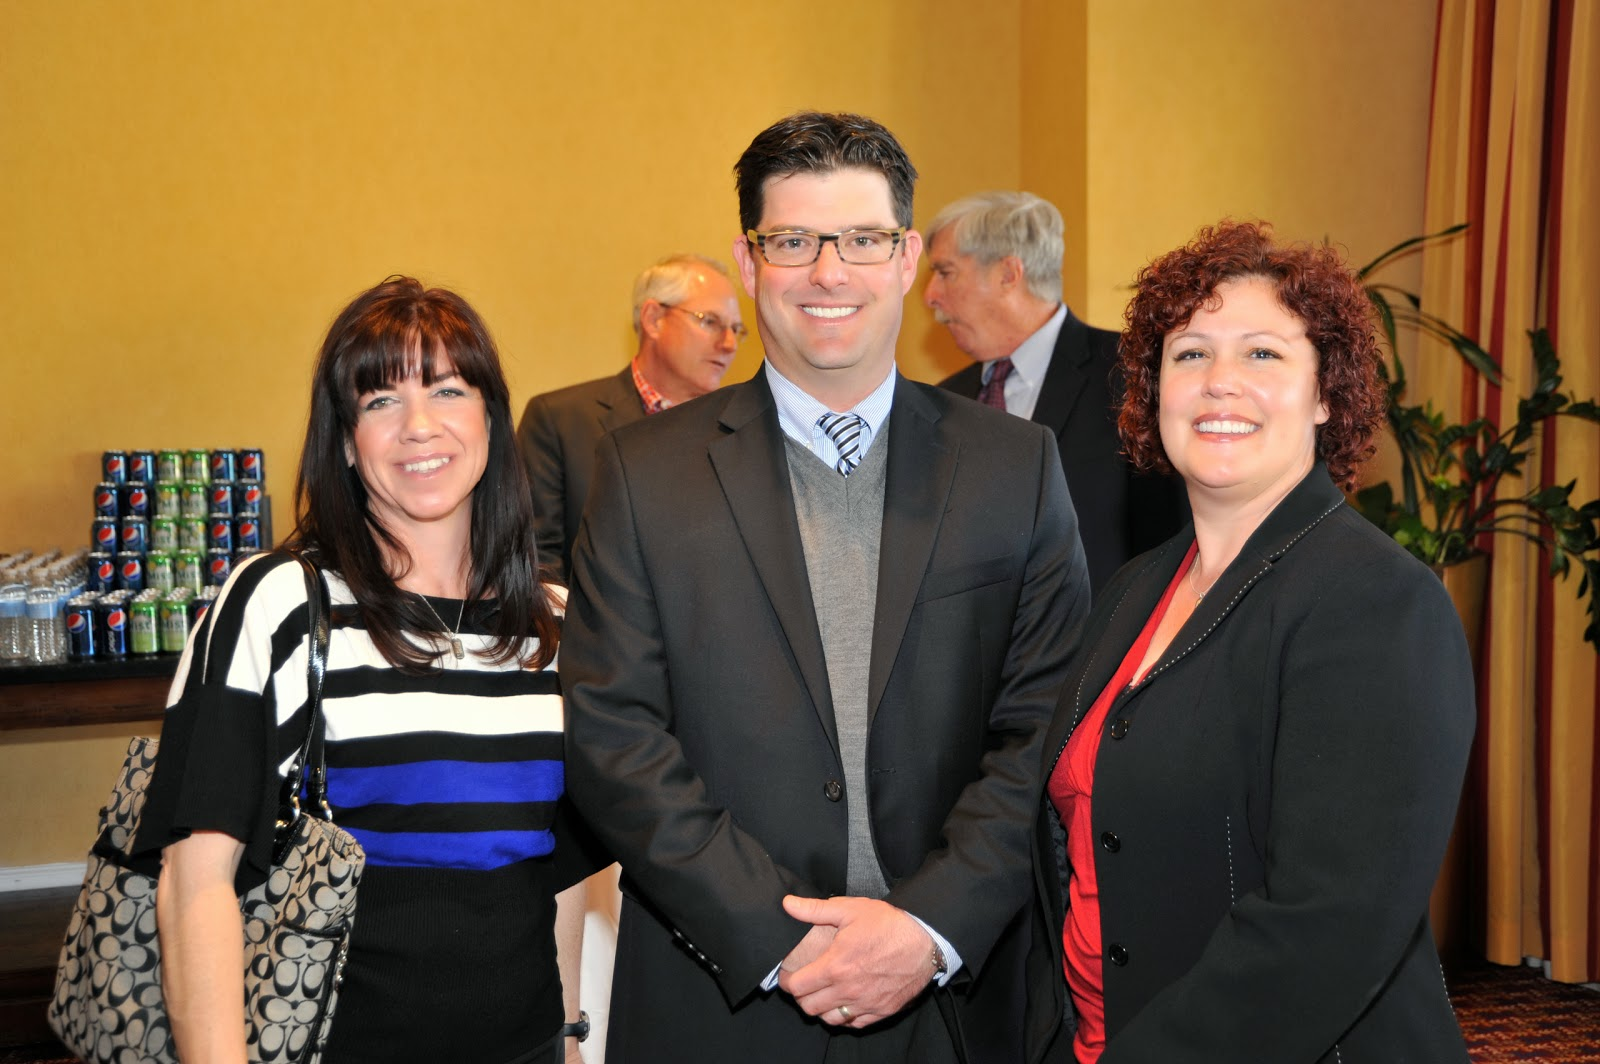 2013 State of the City - 130219-TucsonChamber-StateOfCity-006.jpg